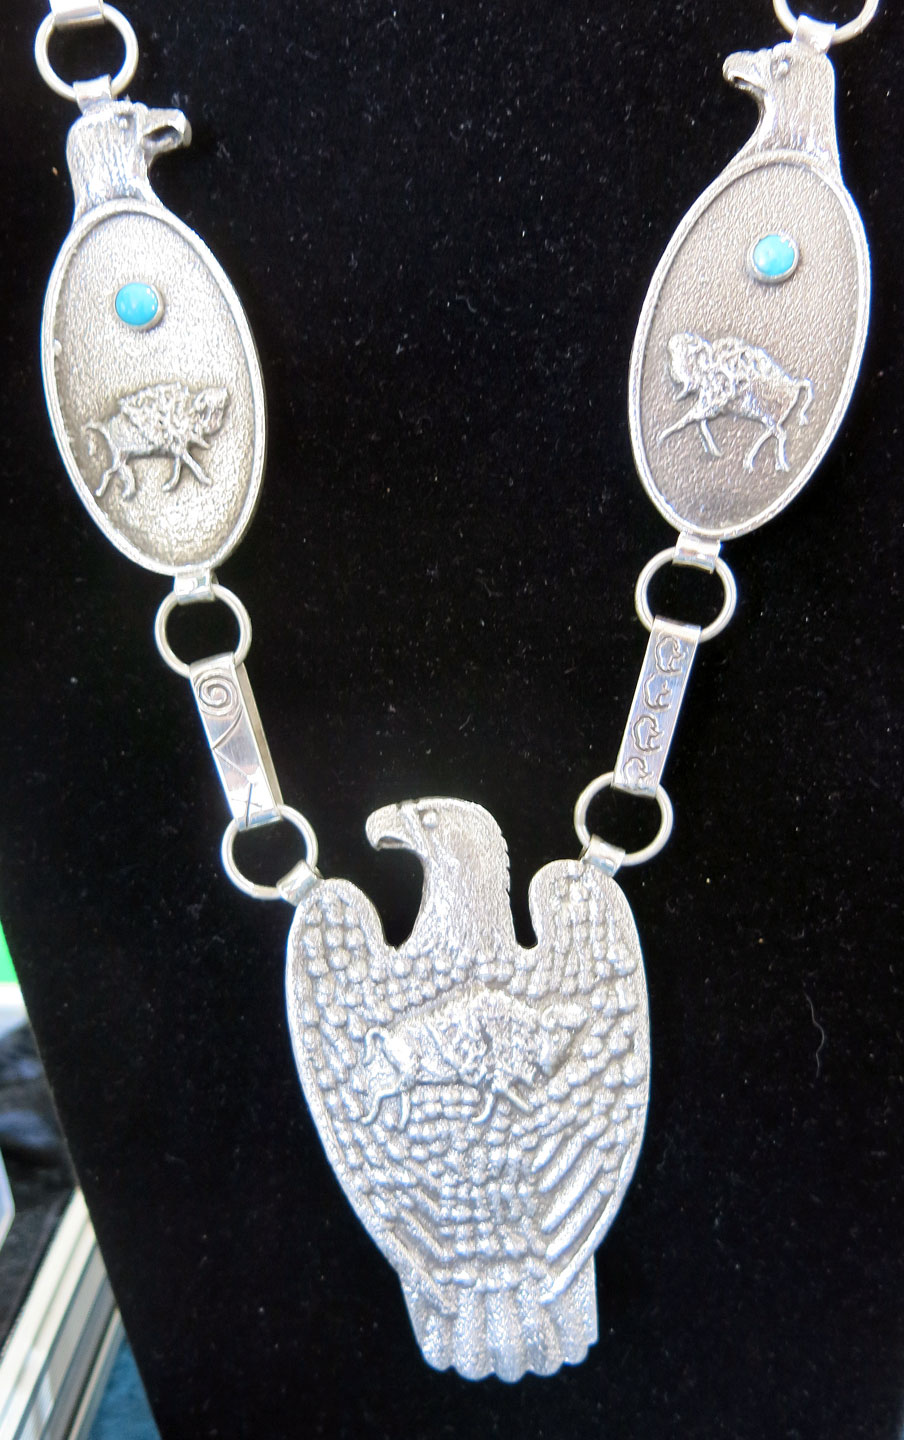 EAGLE PENDANT by Anthony Lovato, tufa-cast in silver with turquoise.